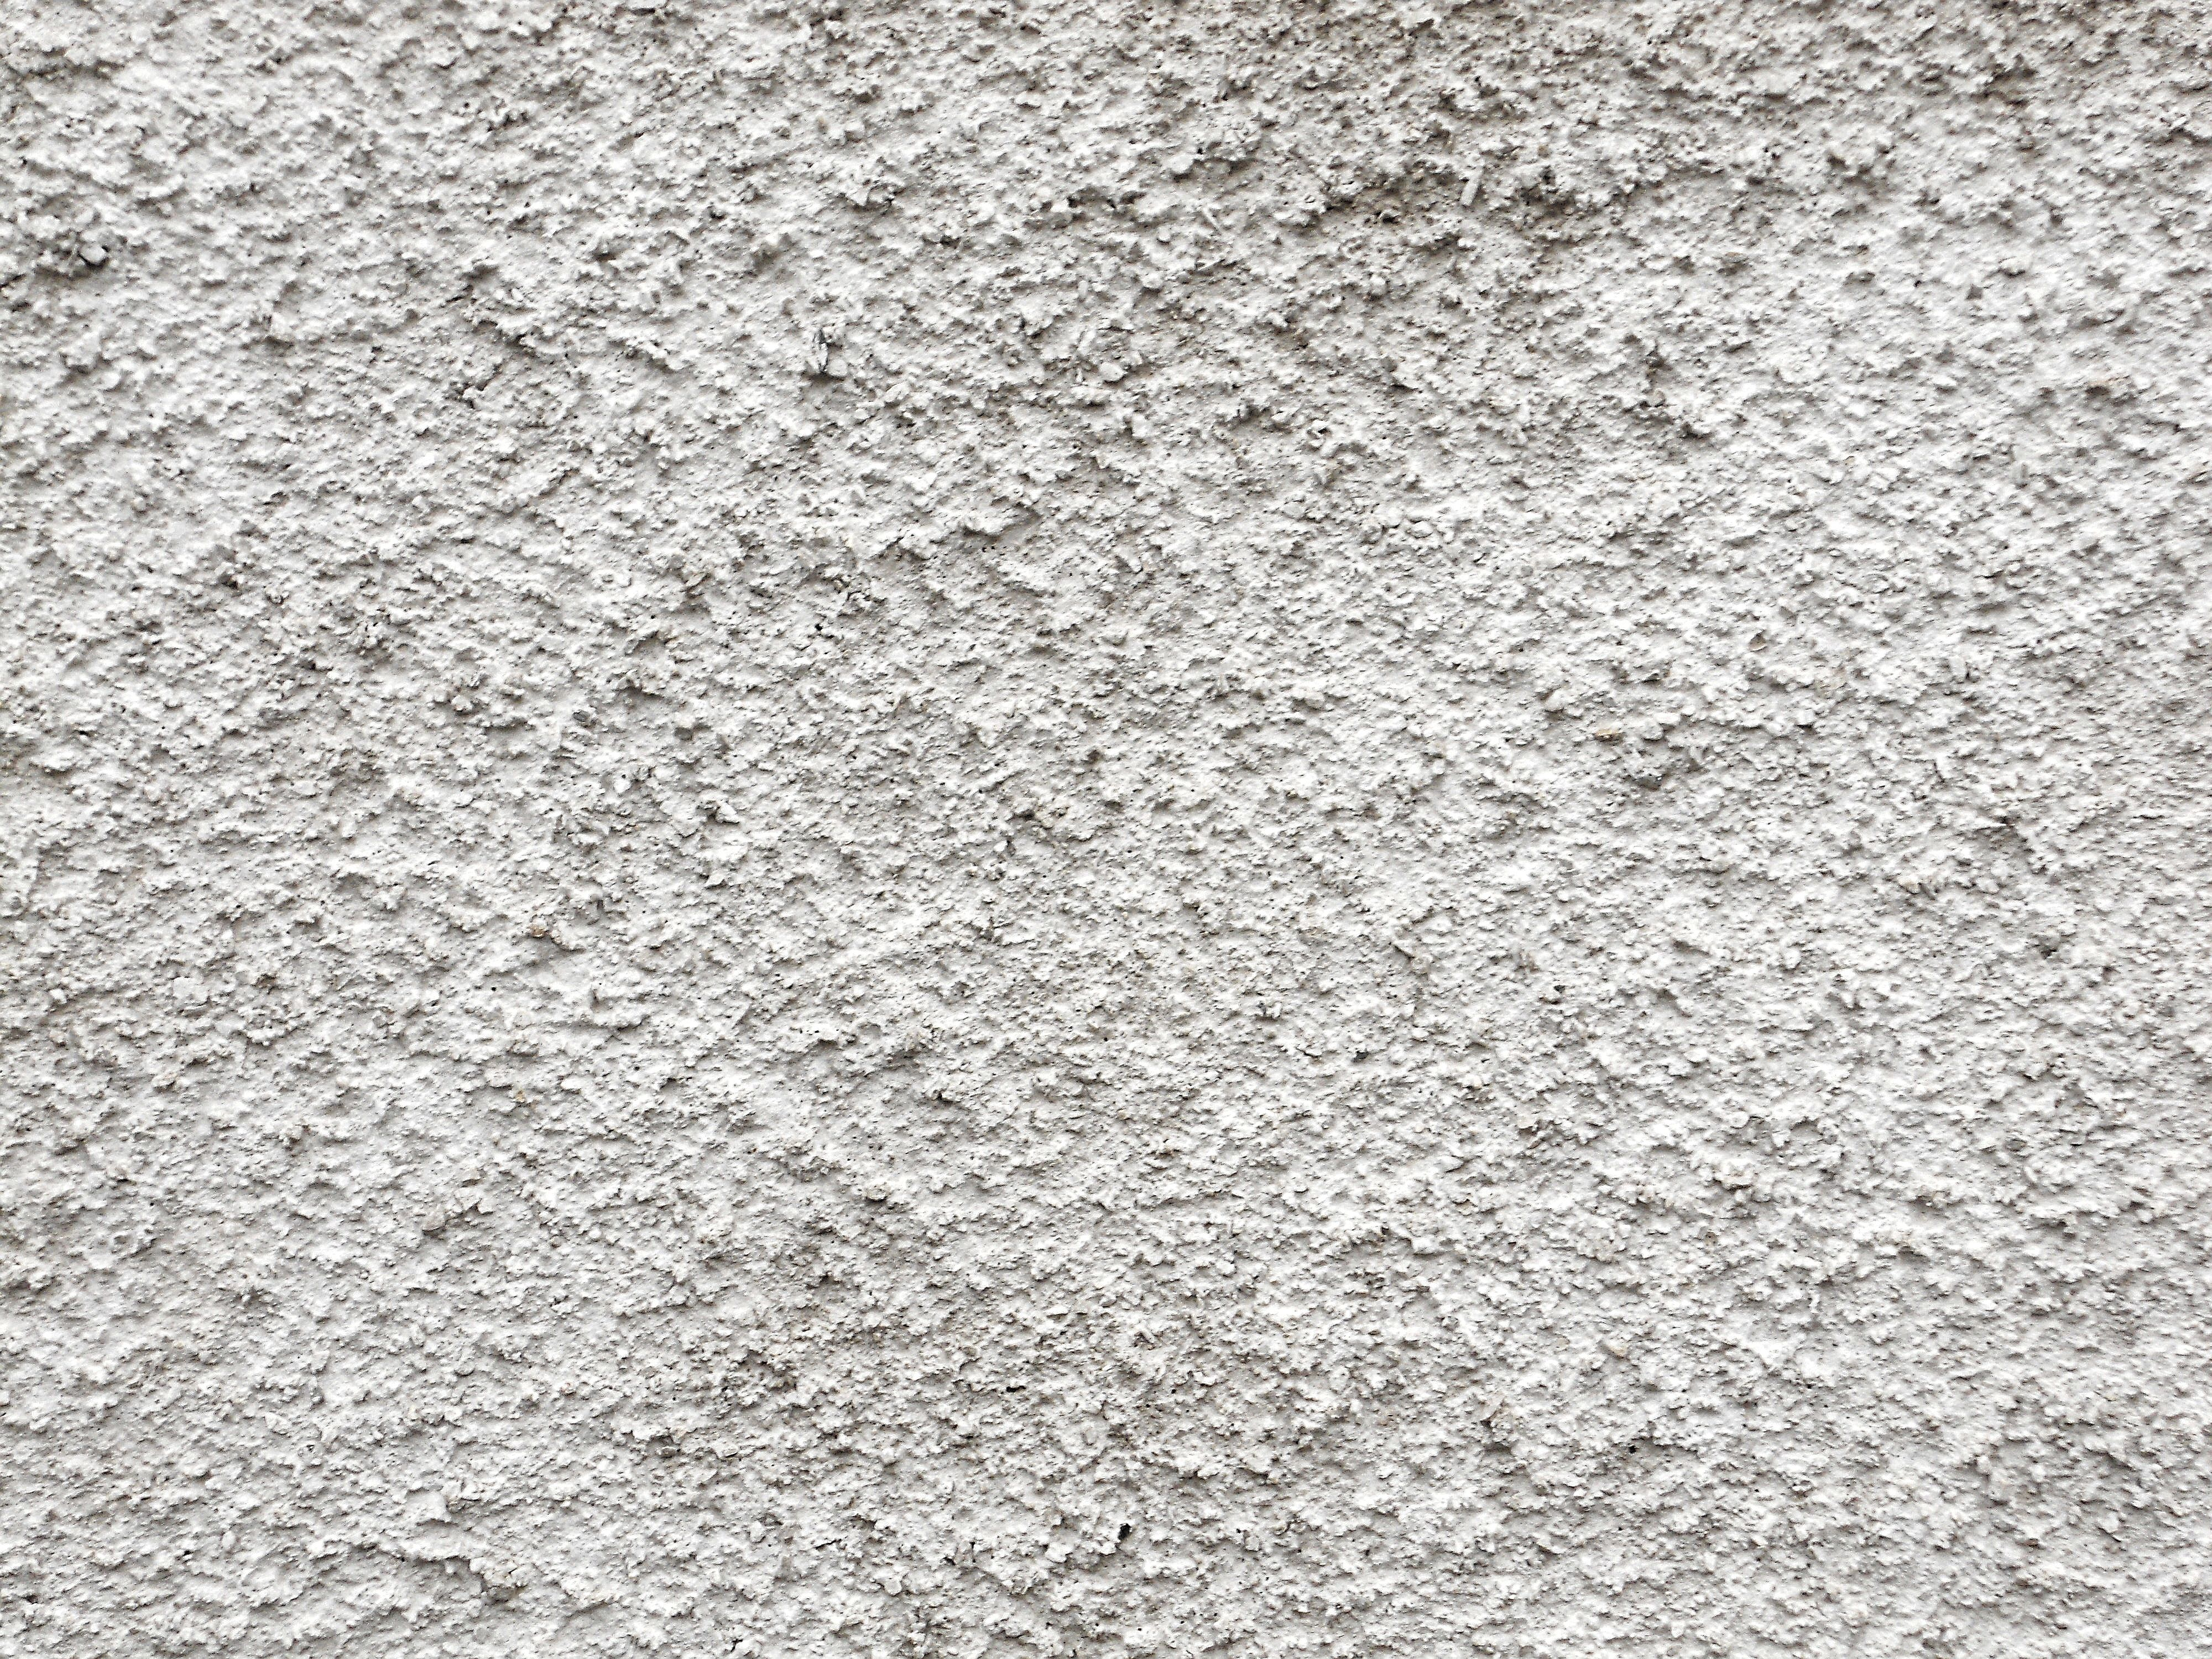 How to Repair Stucco Carefully